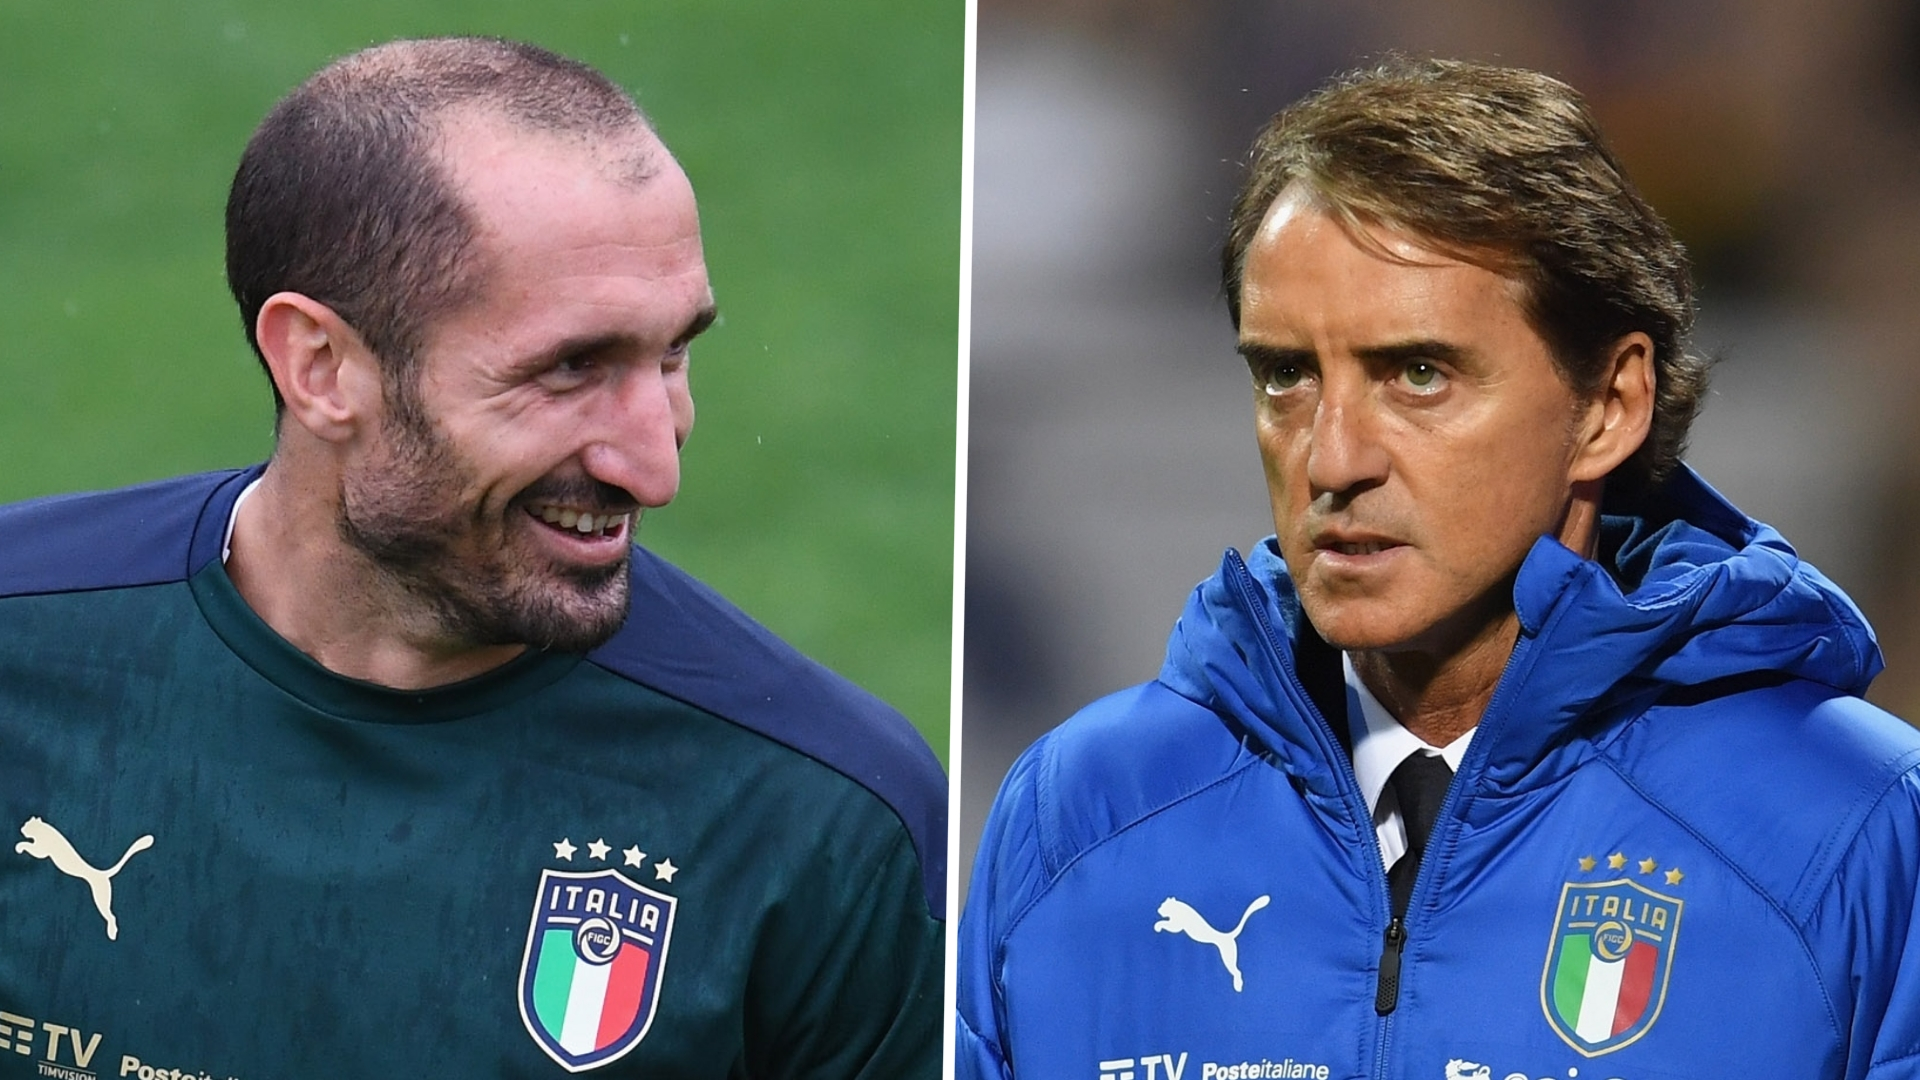 'Chiellini could still teach many defenders' - Mancini impressed by Italy veteran's performance